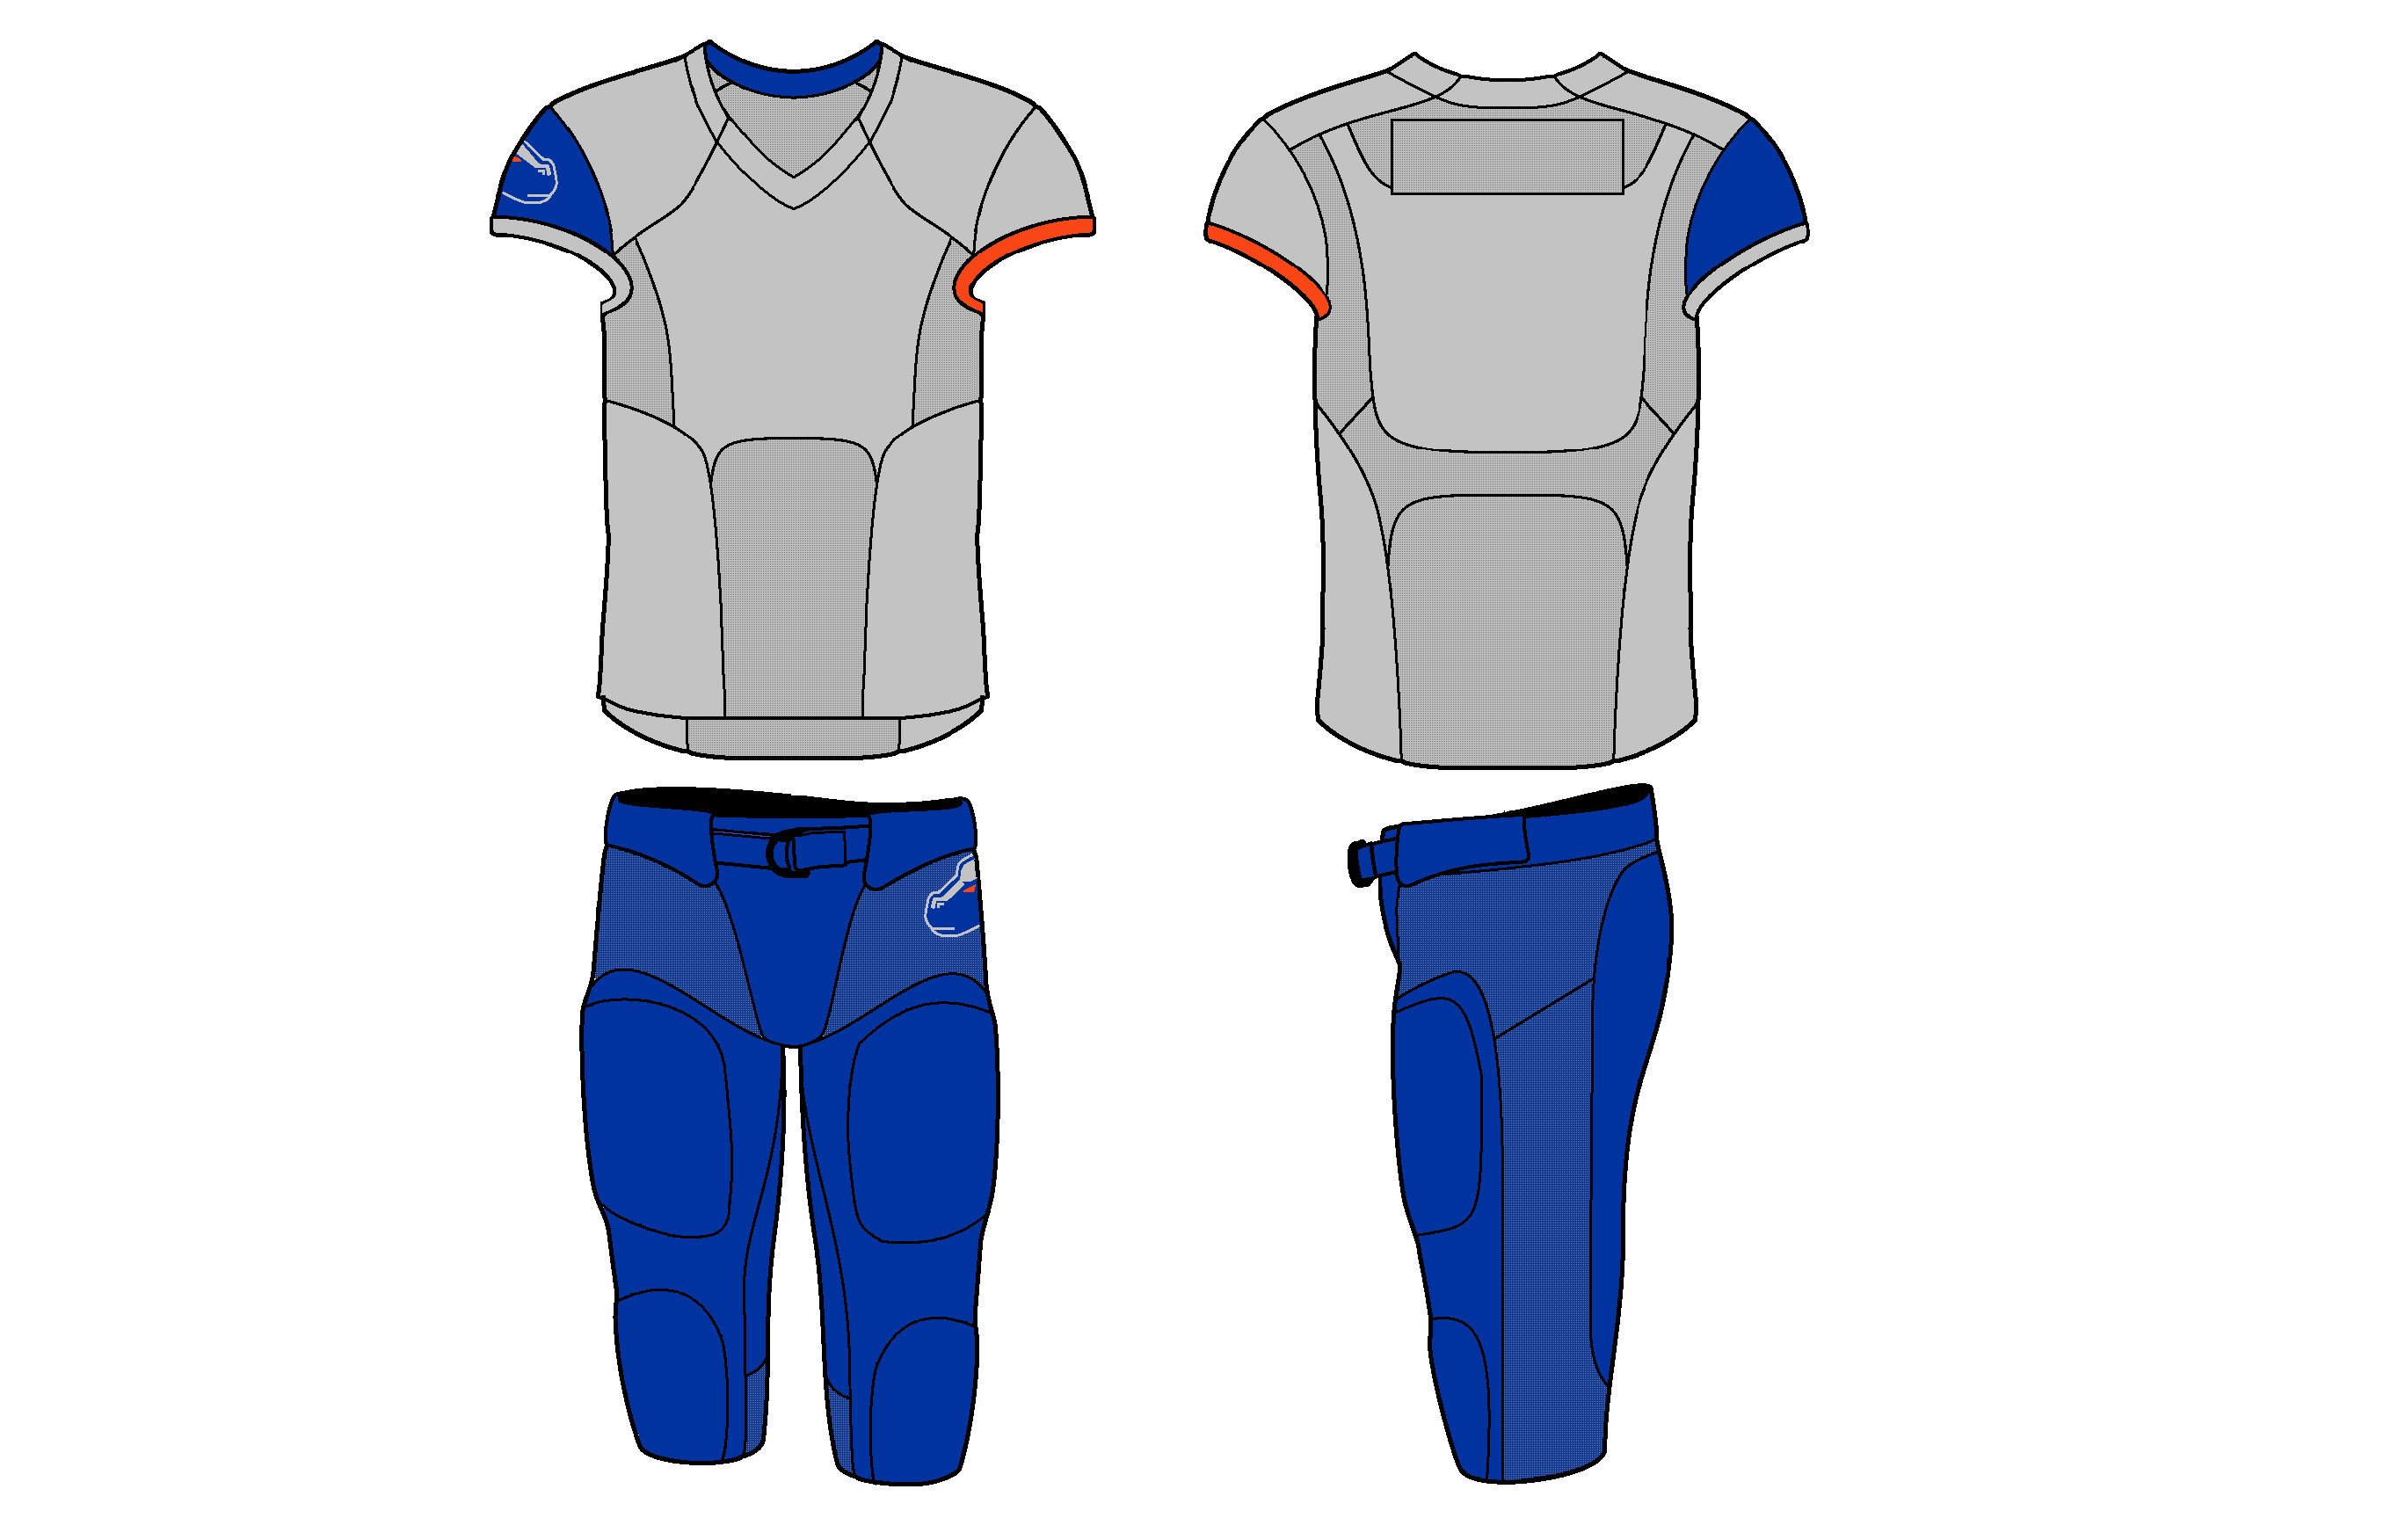 Nike Football Jersey Template Evolution Of Nike College Football Uniforms Land Grant